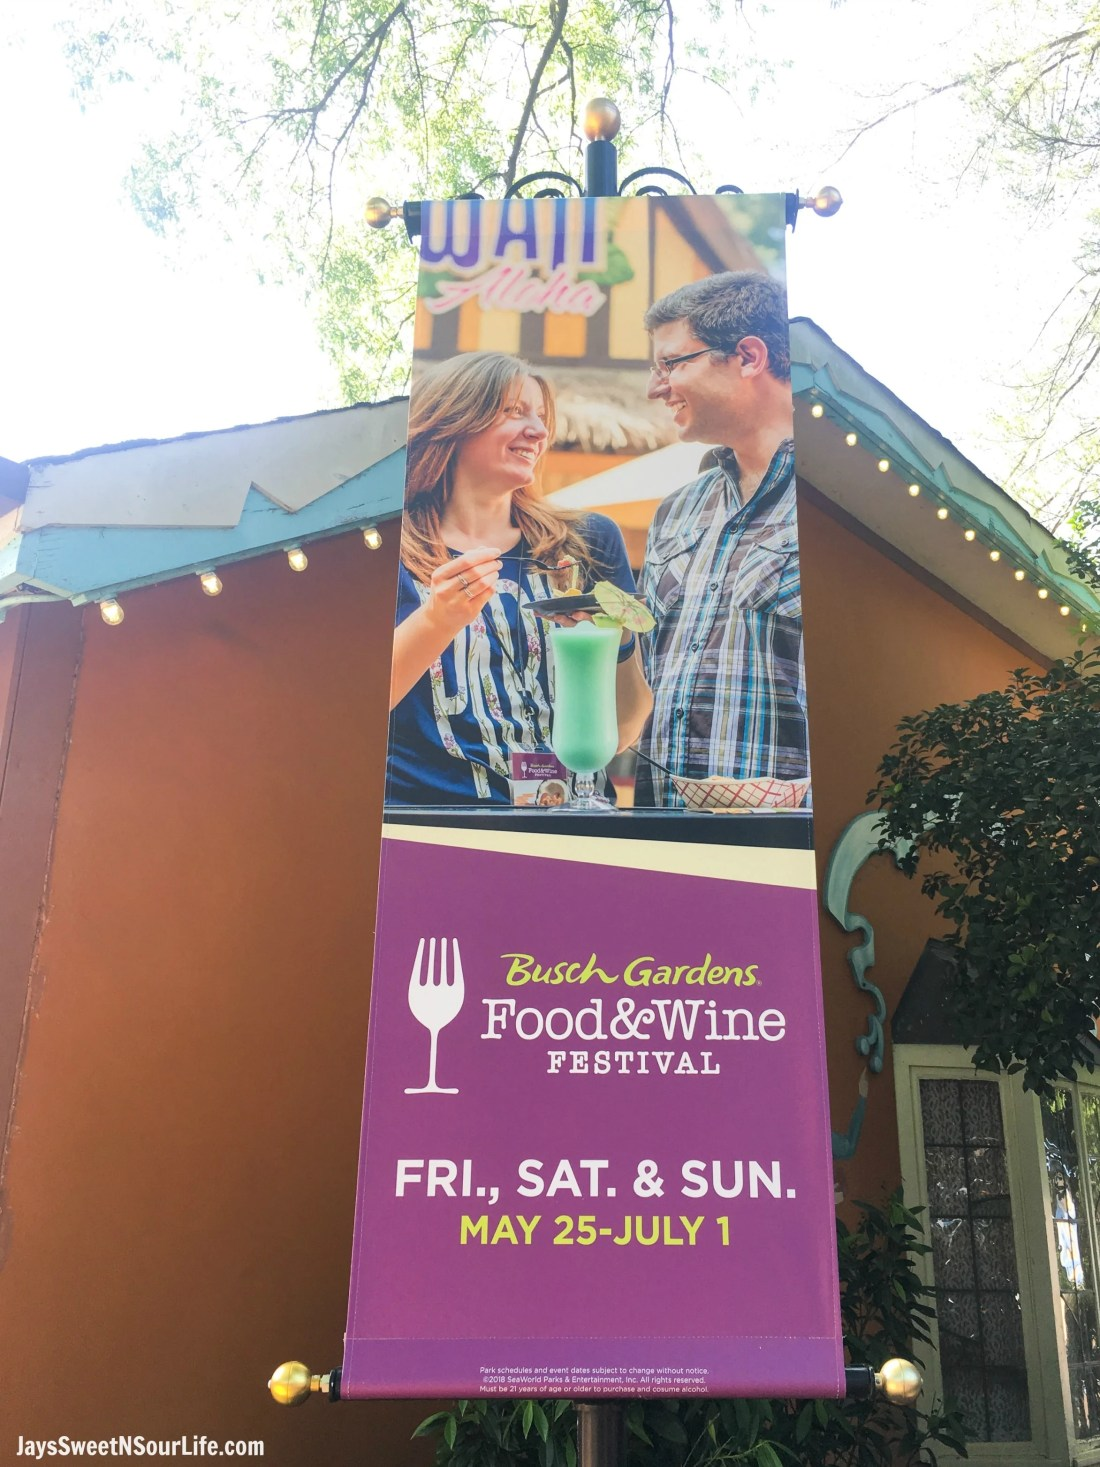 2018 Busch Gardens Food and Wine Festival Sign. Food & Wine Festival is from 11 am to close every Friday, Saturday and Sunday, May 25 - July 1.